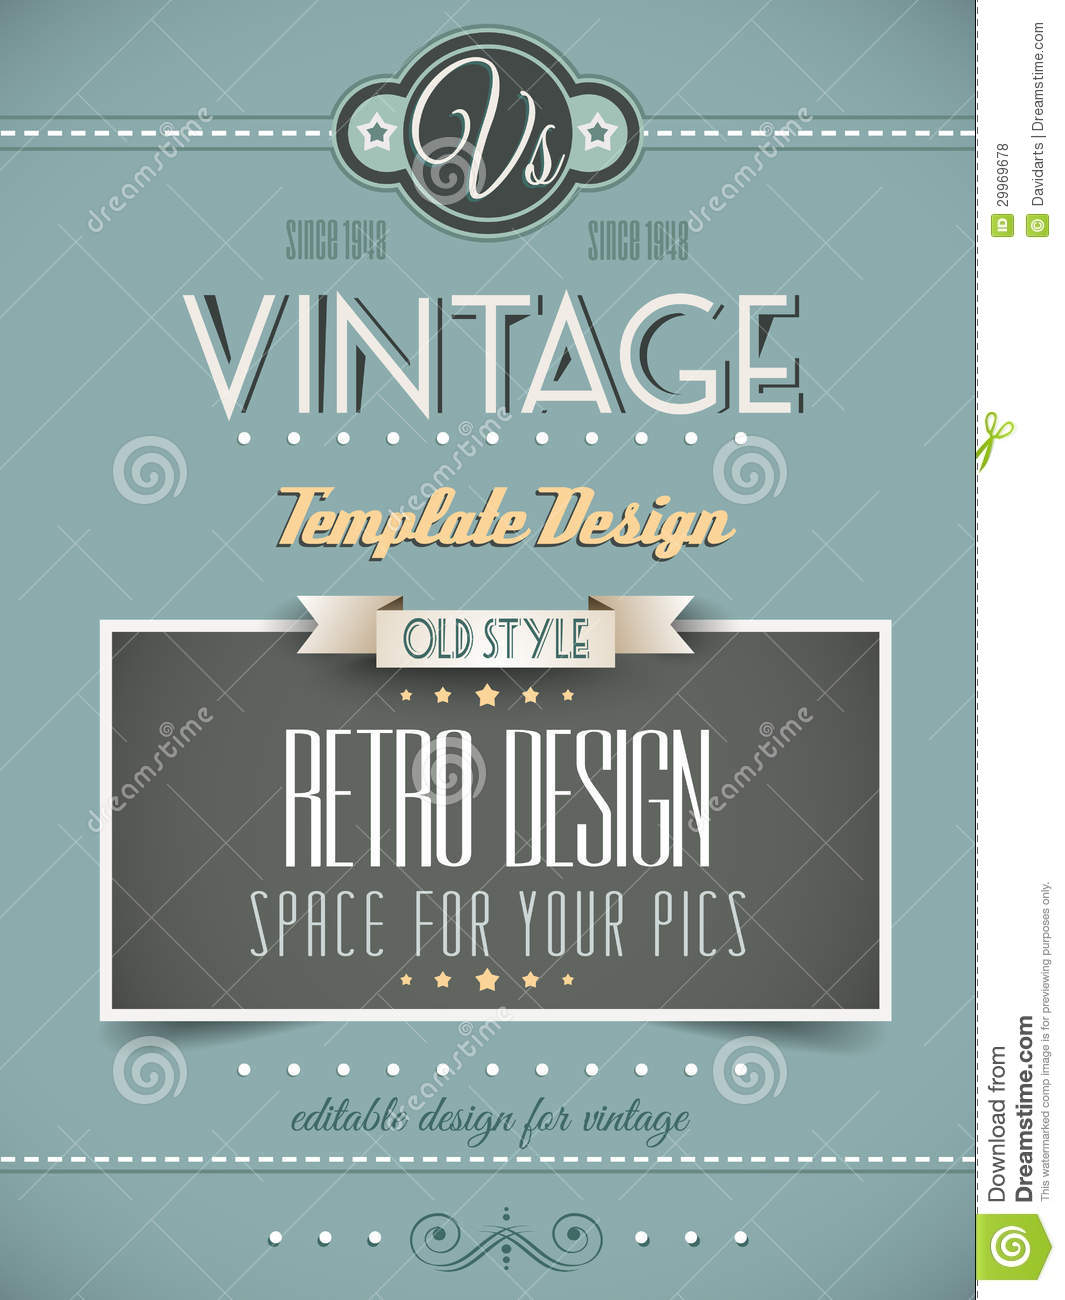 Vintage Book Cover Design Template Free : Vintage retro page or cover template royalty free stock